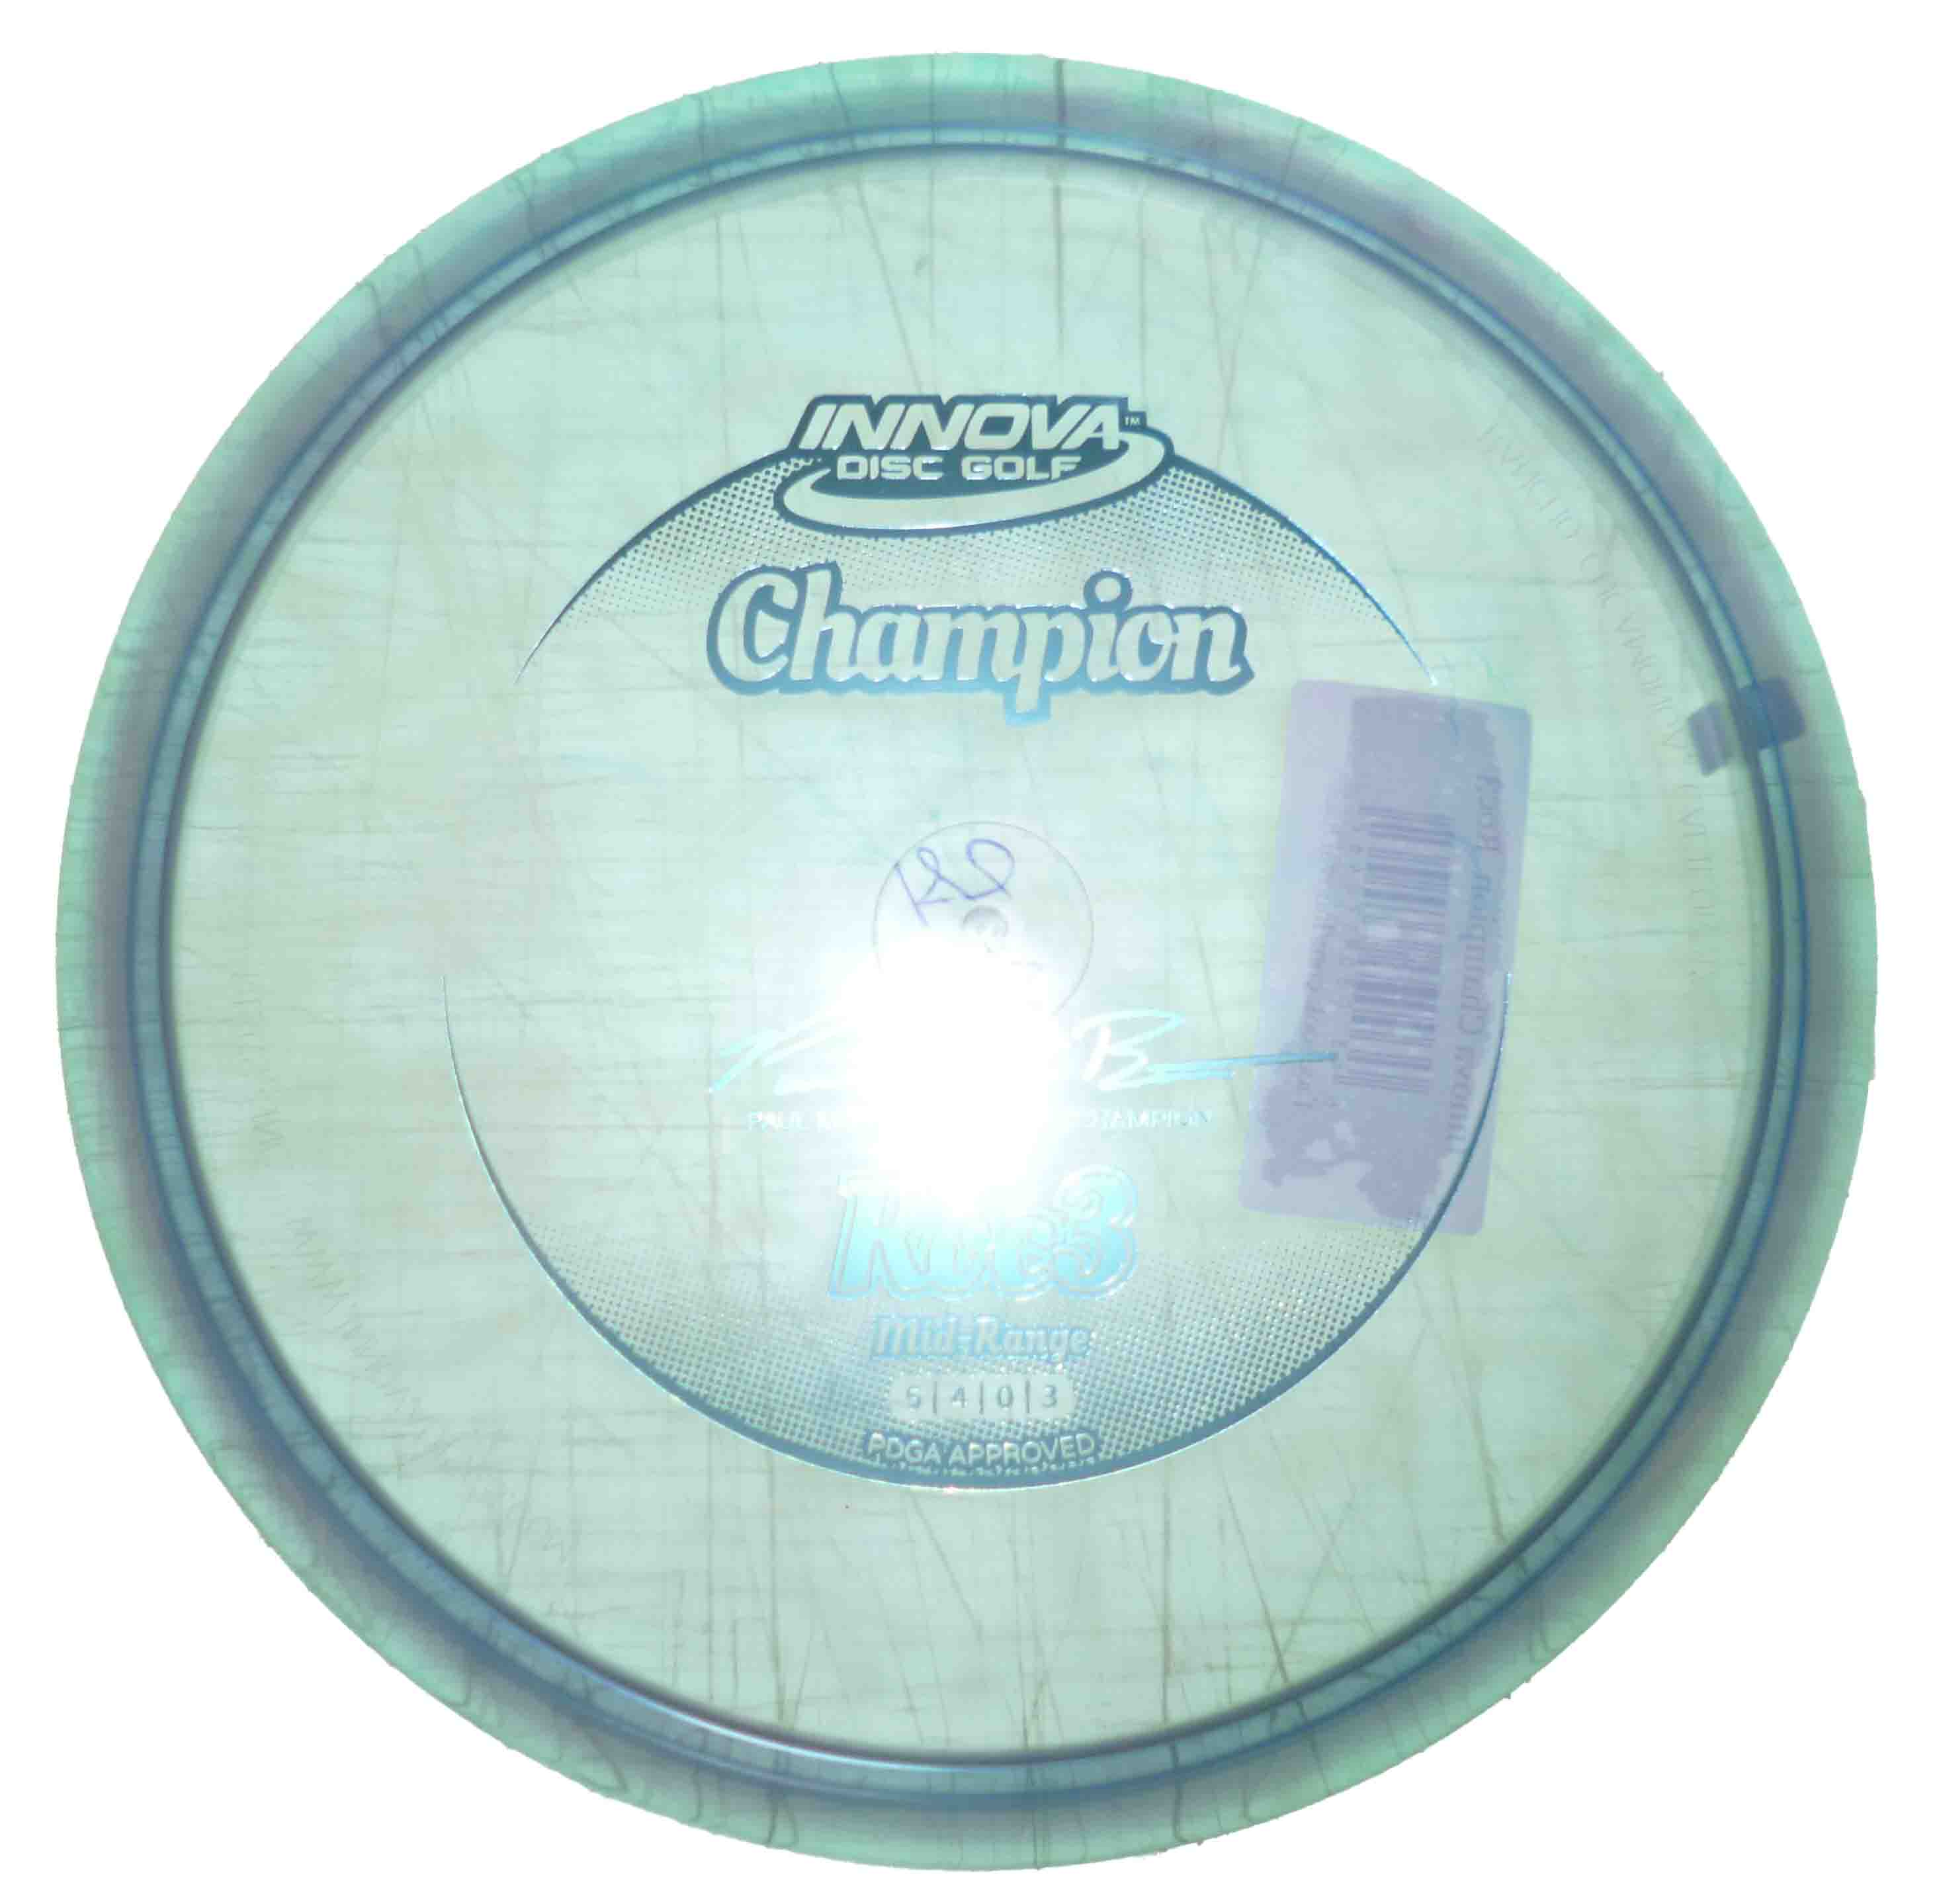 Roc 3 Champion Baby Blue